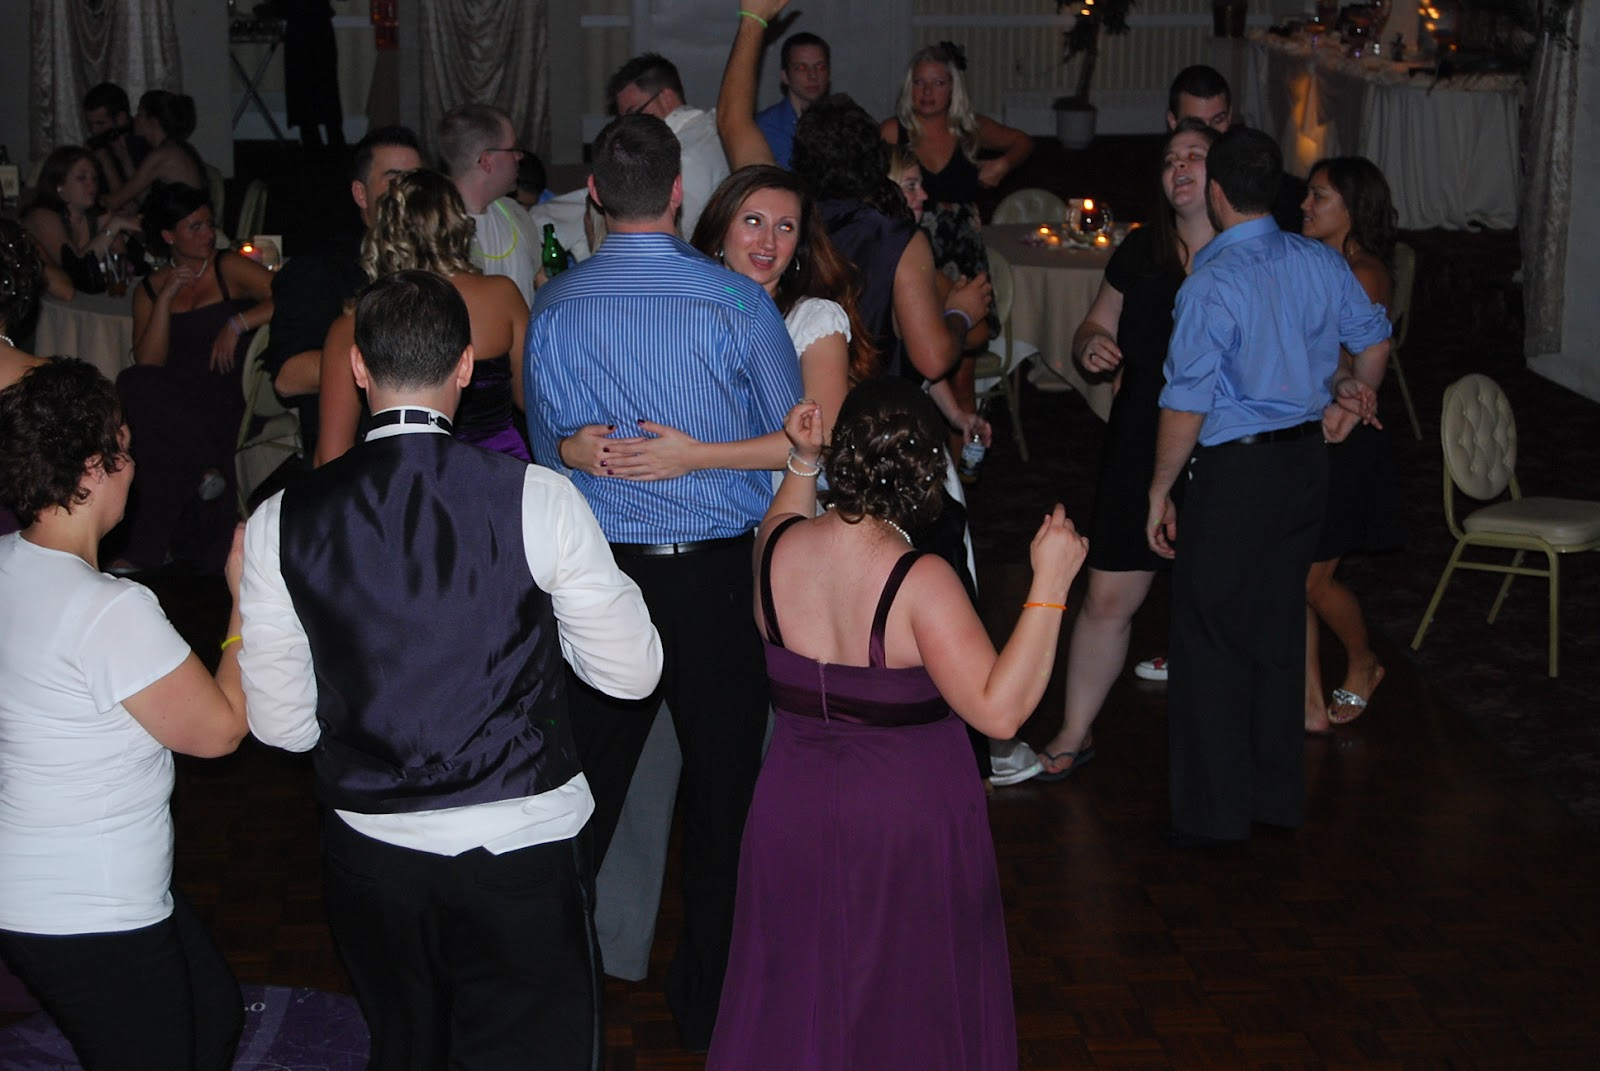 Weddings, Parties, Music & More: How To Make People Dance